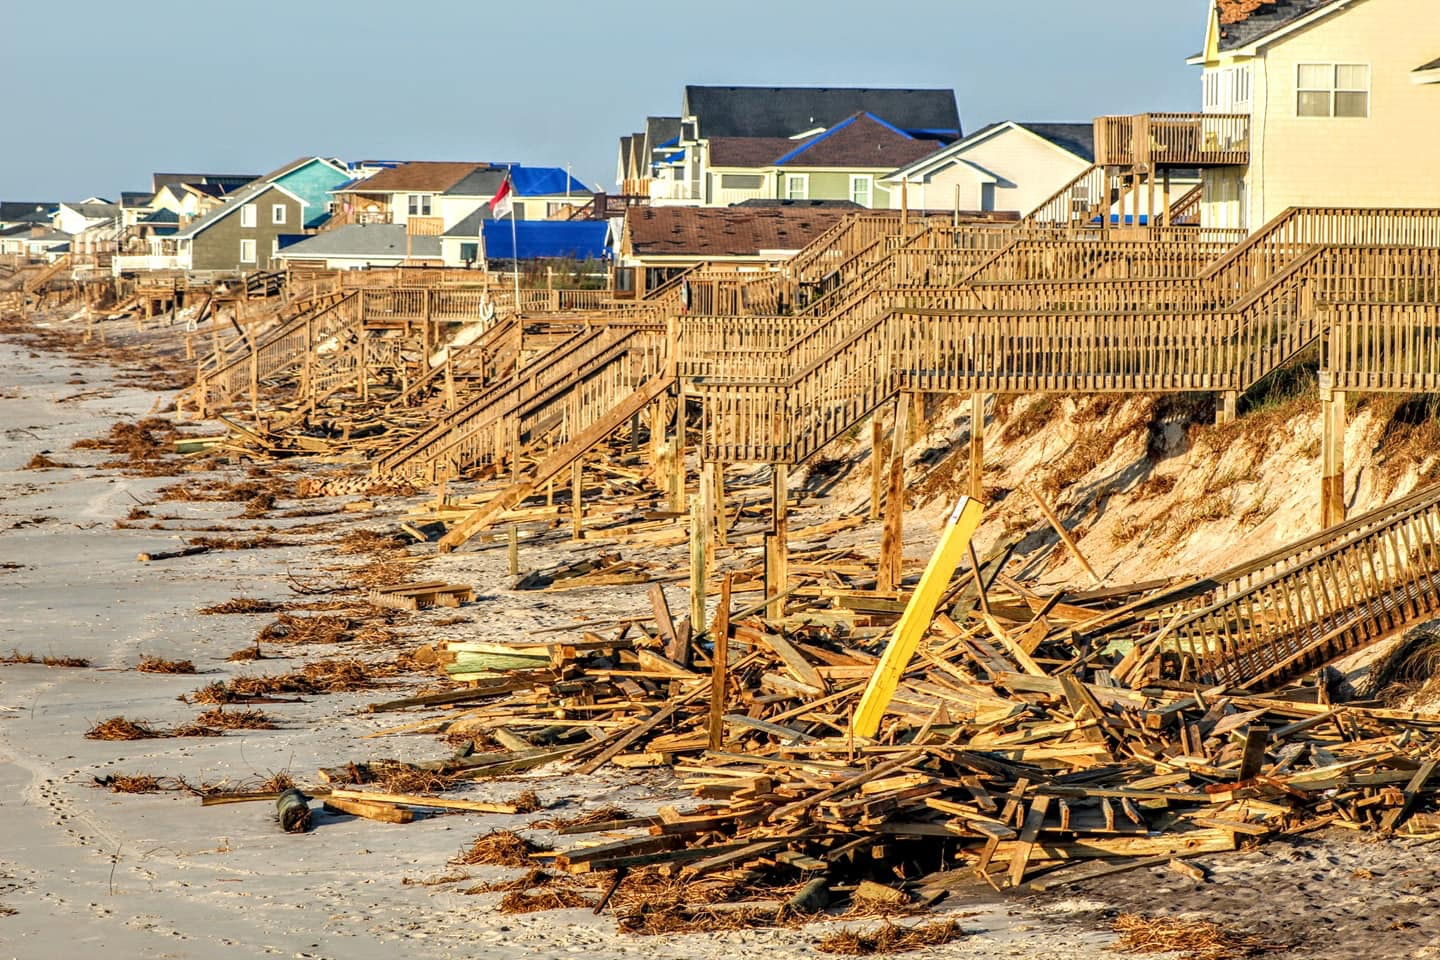 Devastated by the destructive forces of Hurricane Florence, many residents in North Topsail Beach returned to see their homes subject to property damage from the storm. Both winds and flooding played a large role in property and environmental degradation during this devastating storm.